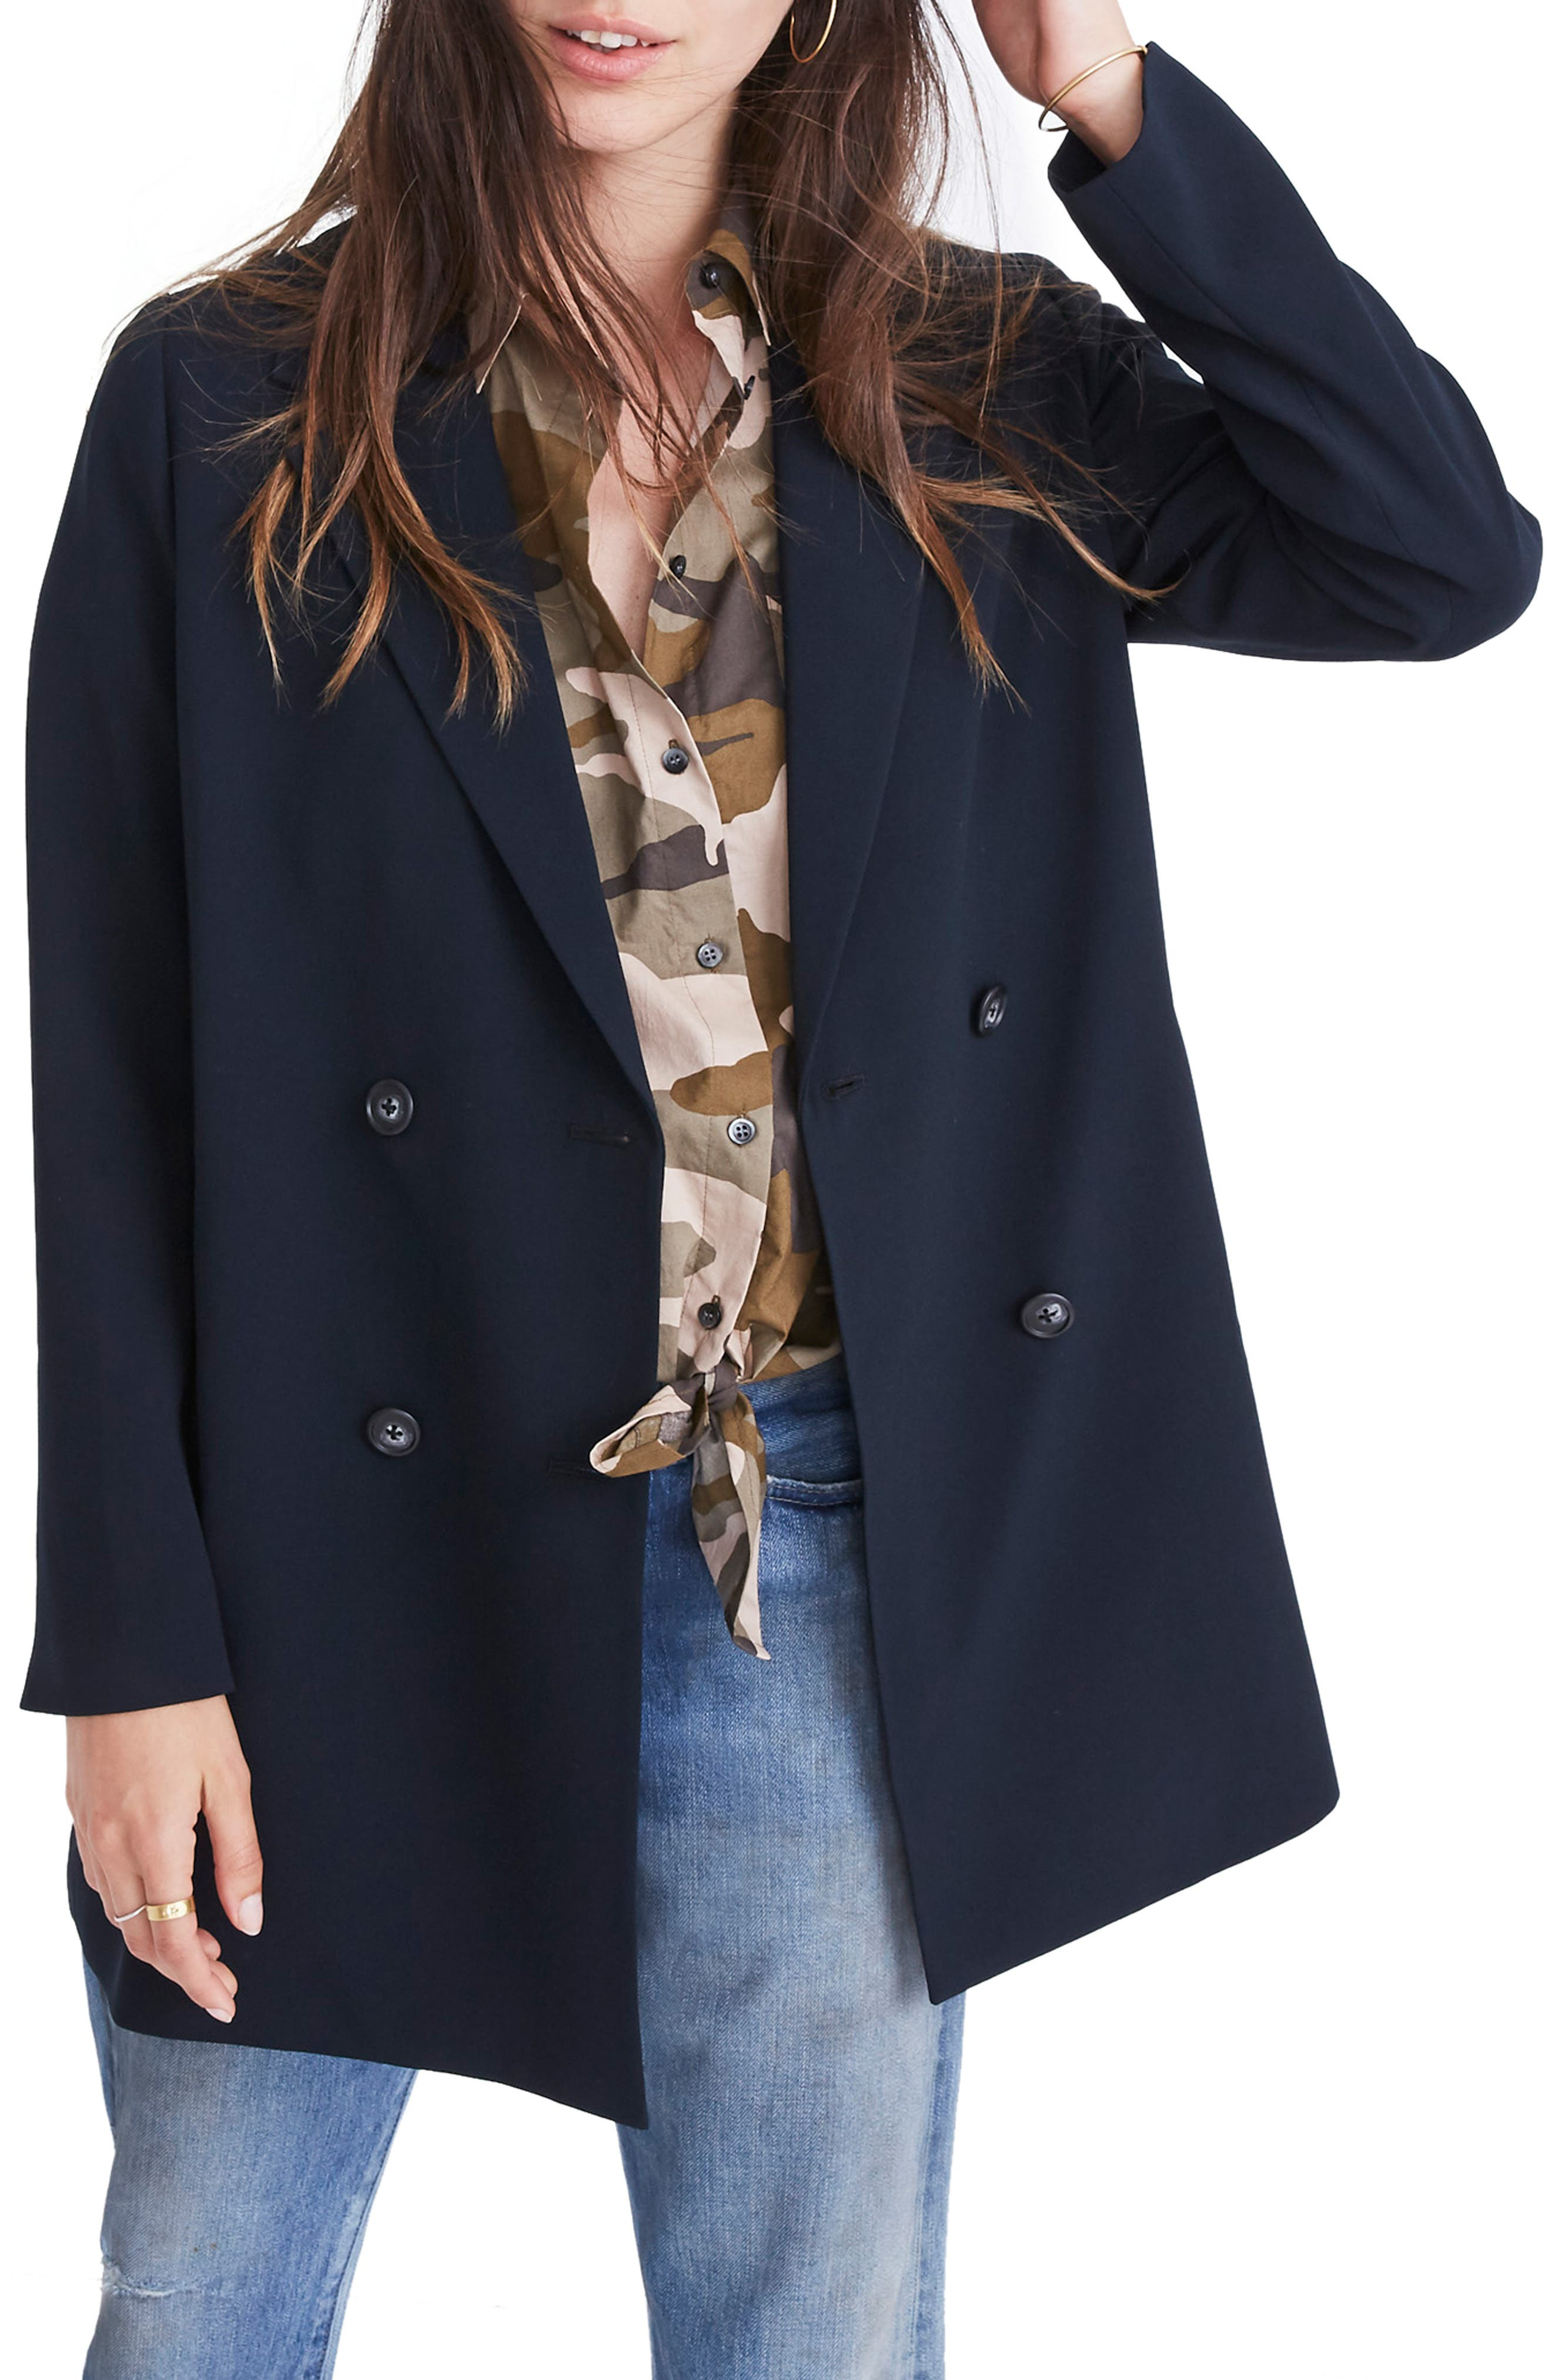 Caldwell Double Breasted Blazer,                             Main thumbnail 1, color,                             TRUE BLACK